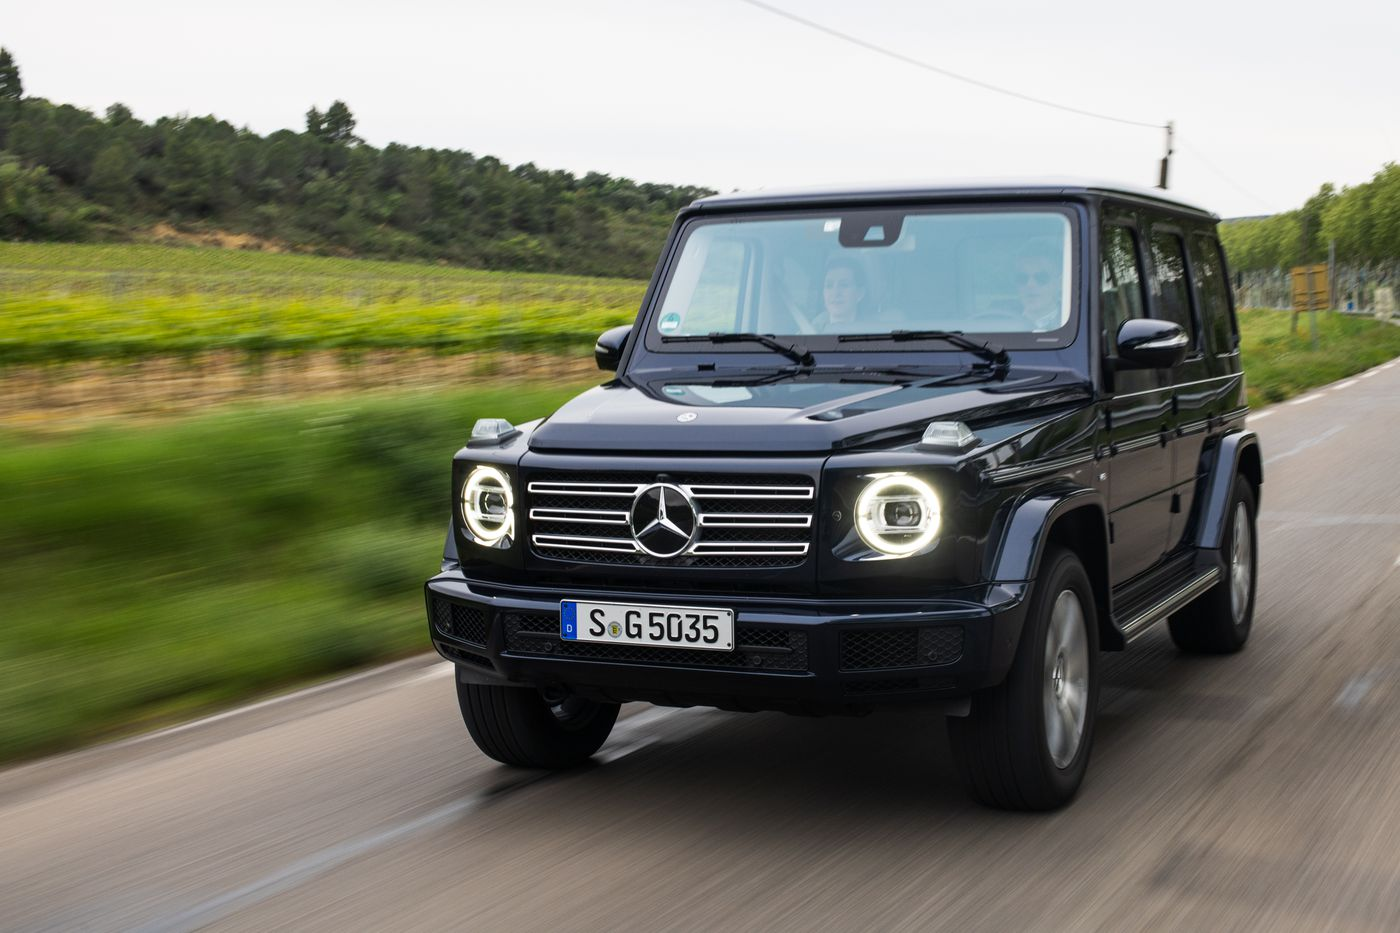 The 2019 Mercedes G Wagen Is Where Past And Present Meet Under The Hood The Verge